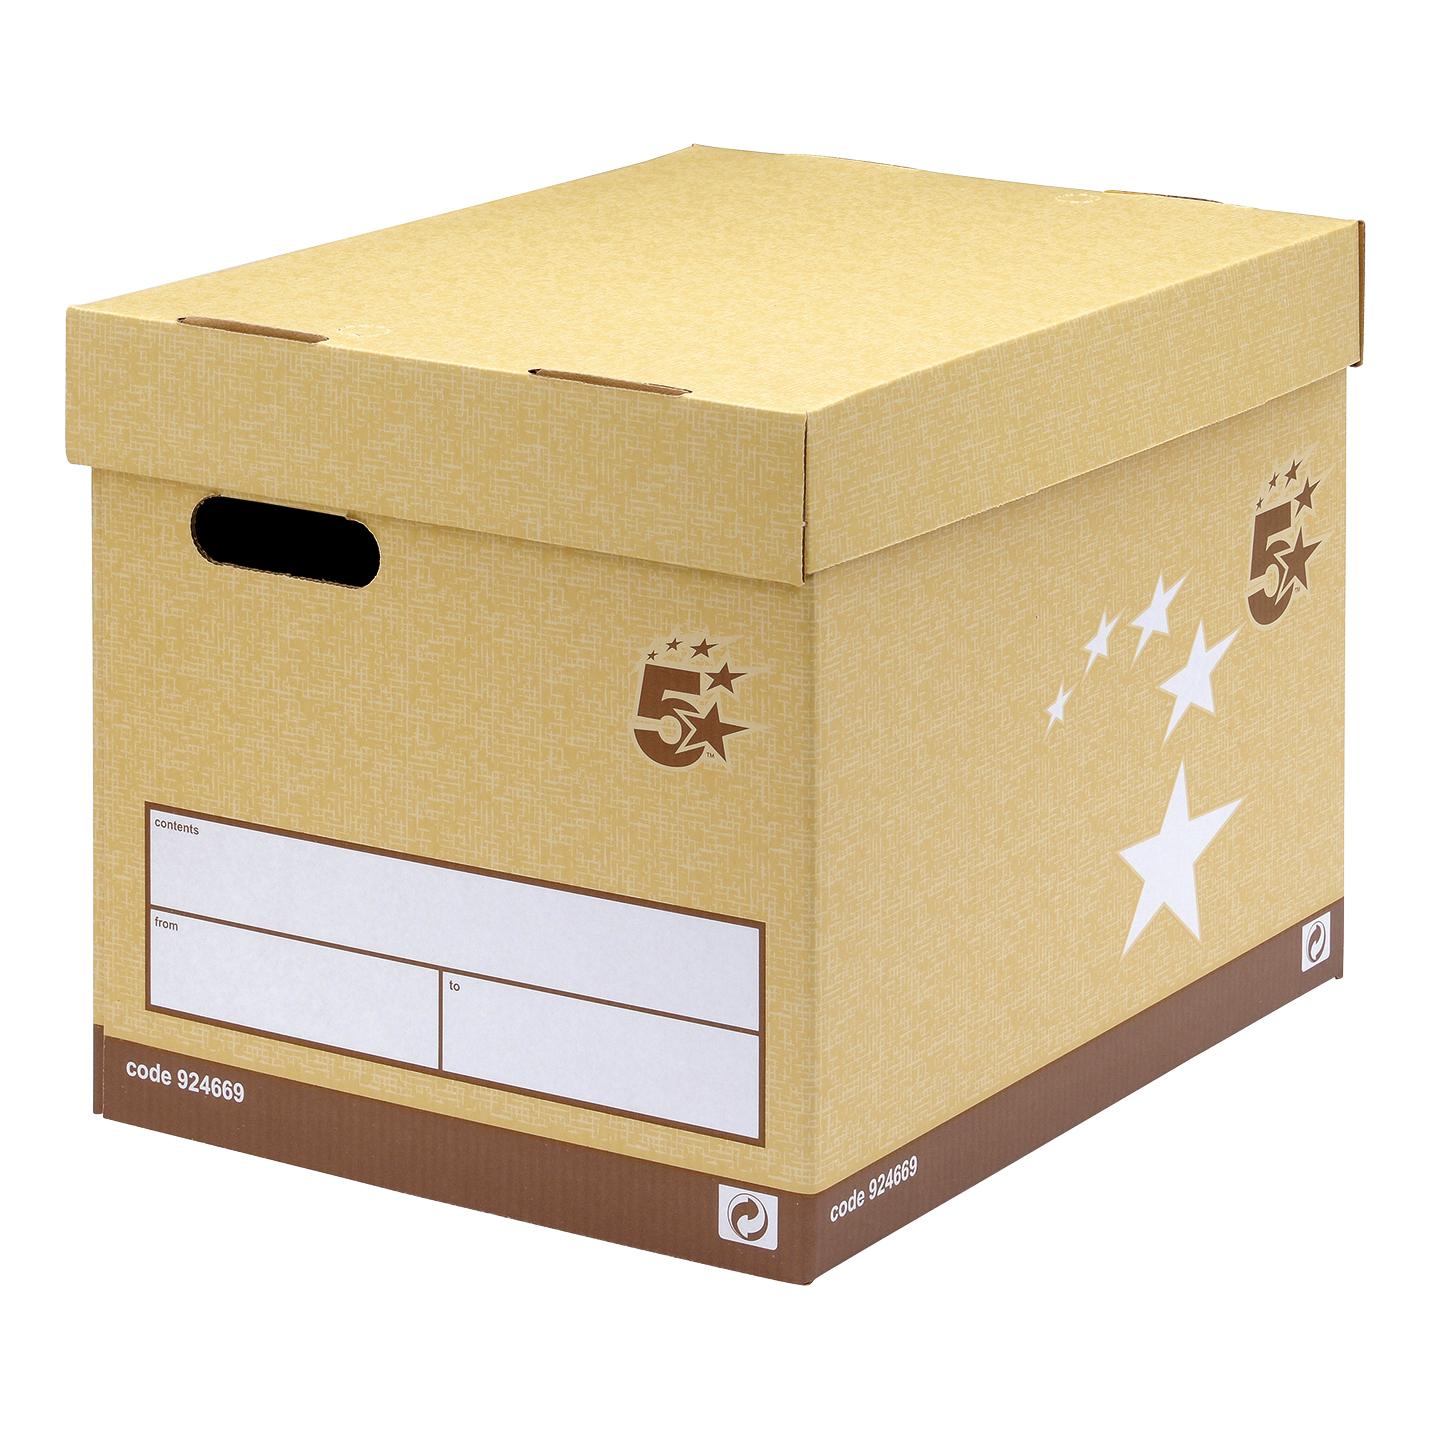 Storage Boxes 5 Star Elite FSC Superstrong Archive Storage Box & Lid Self-assembly W313xD415xH326mm Sand Pack 10